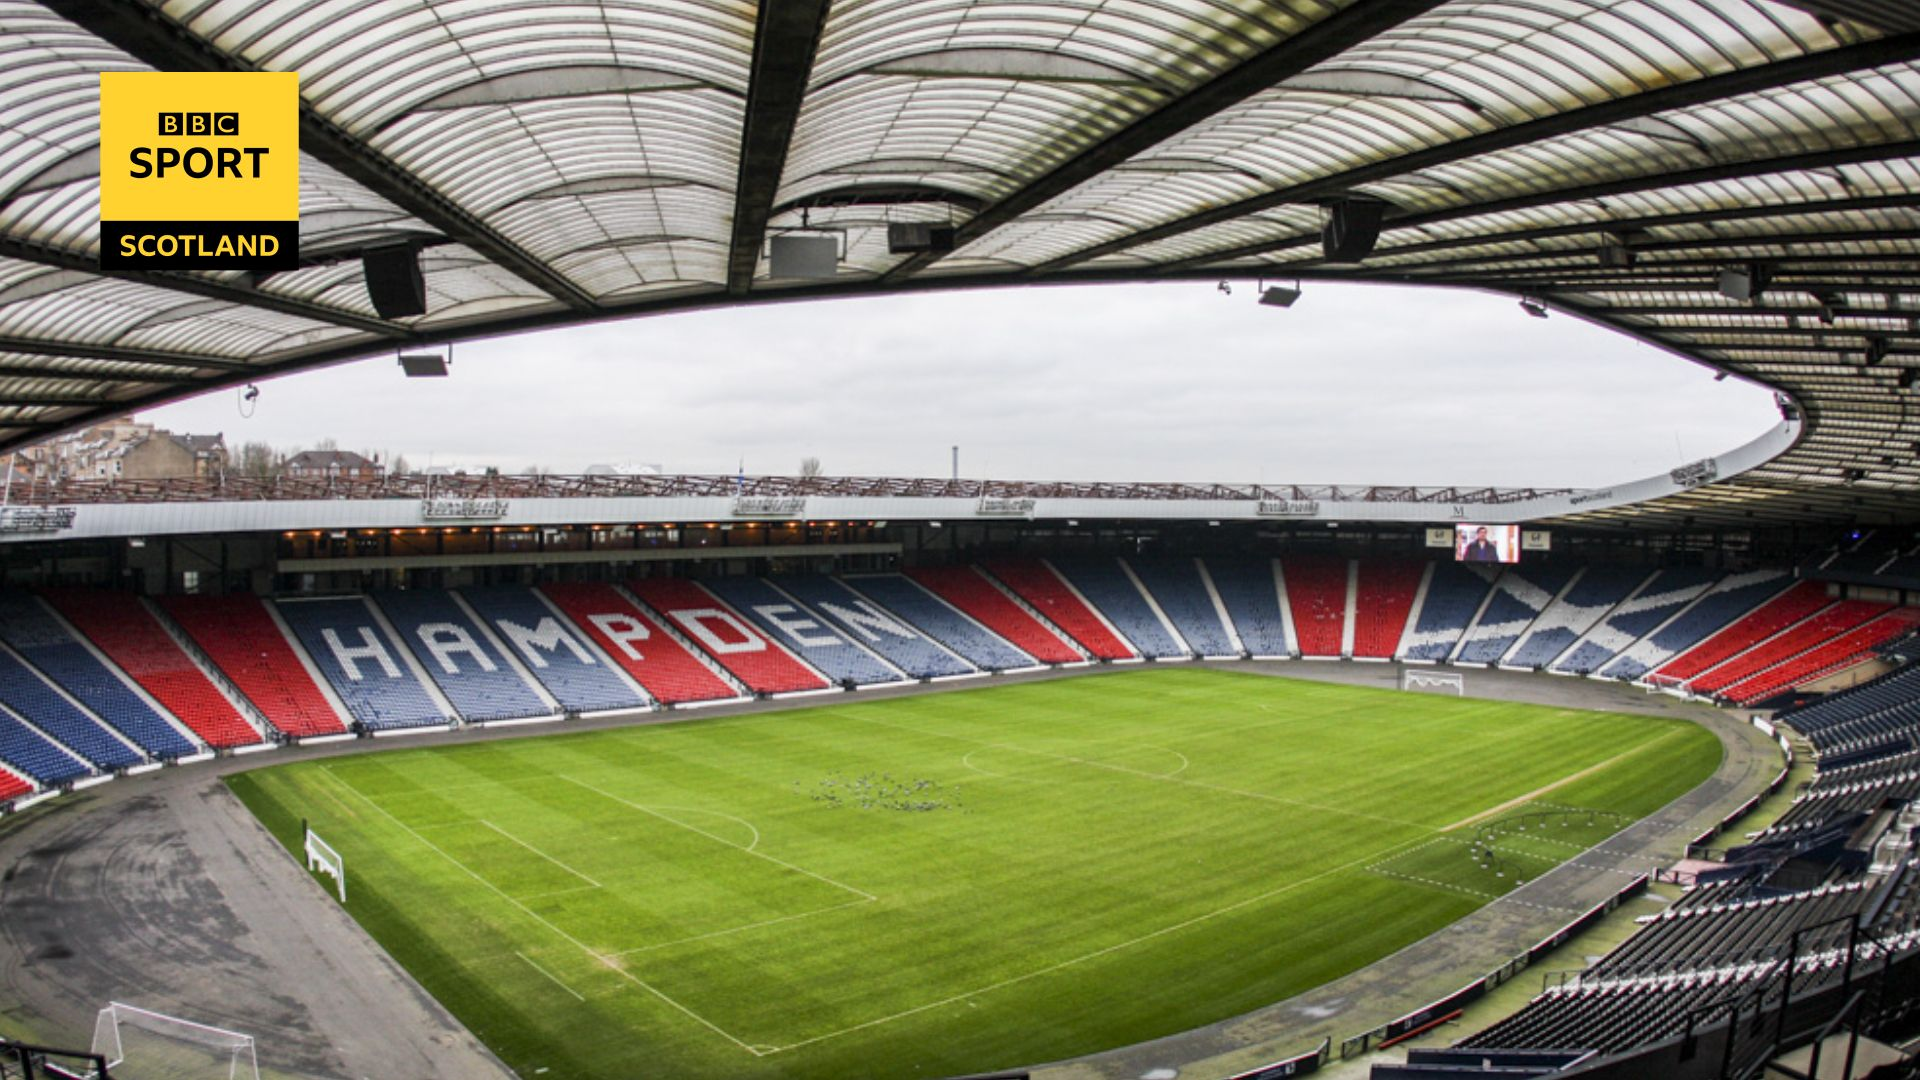 download sportscene hampden virtual zoom backgrounds bbc sport download sportscene hampden virtual